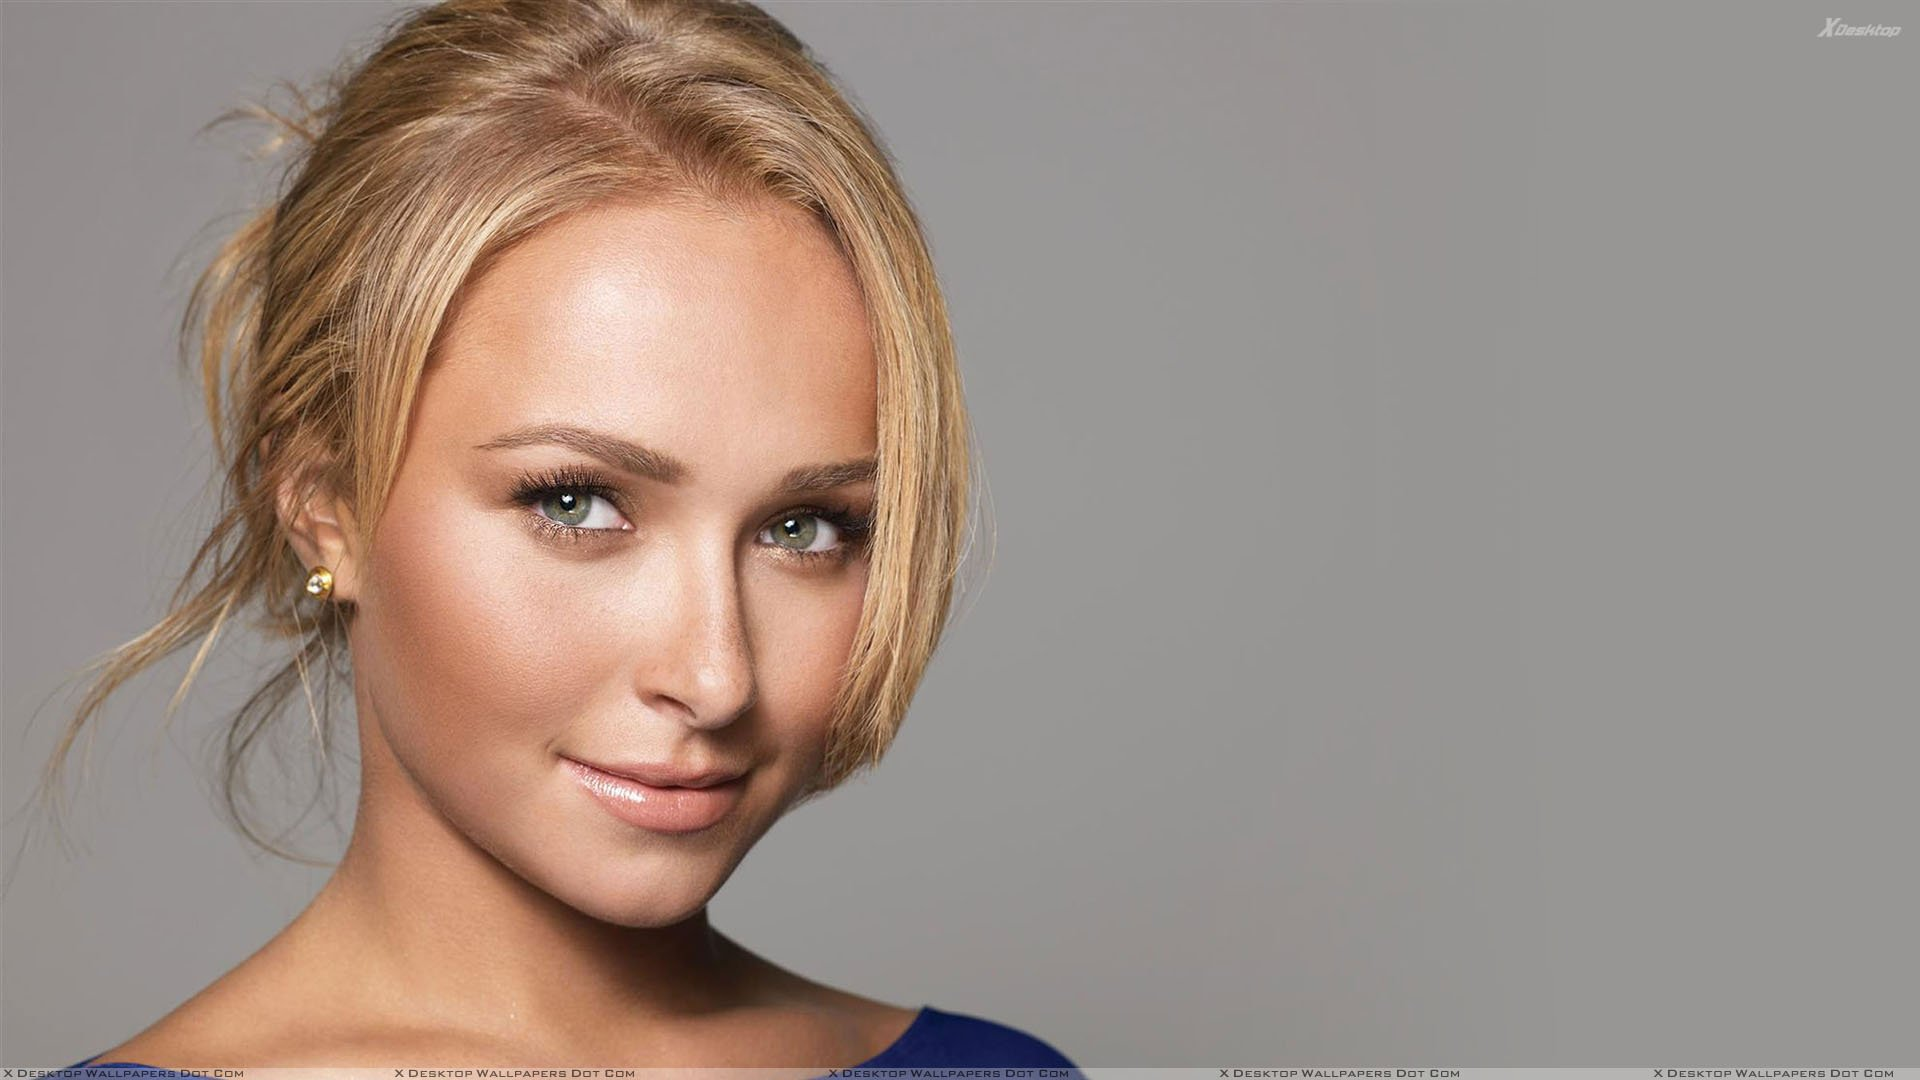 Hayden Panettiere Smiling And Wet Lips Face Closeup Wallpaper 1920x1080